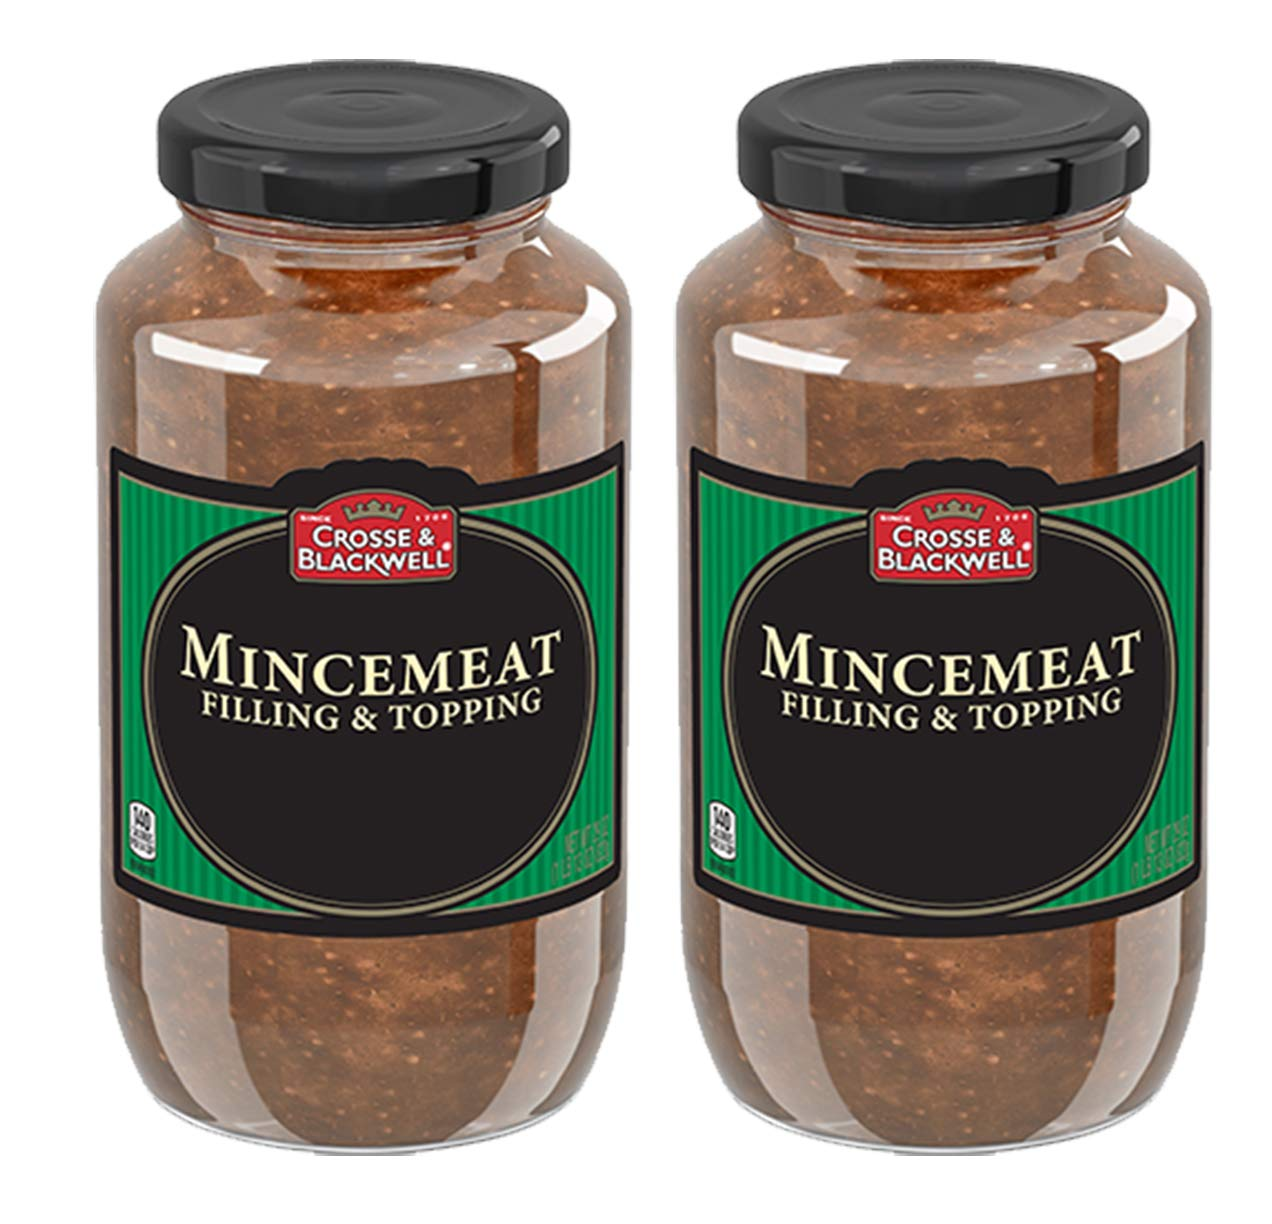 Cross & Blackwell Mincemeat Pie Filling and Topping   (2) 29 Ounce Jar – Gourmet, All Natural, and Free of High Fructose Corn Syrup!